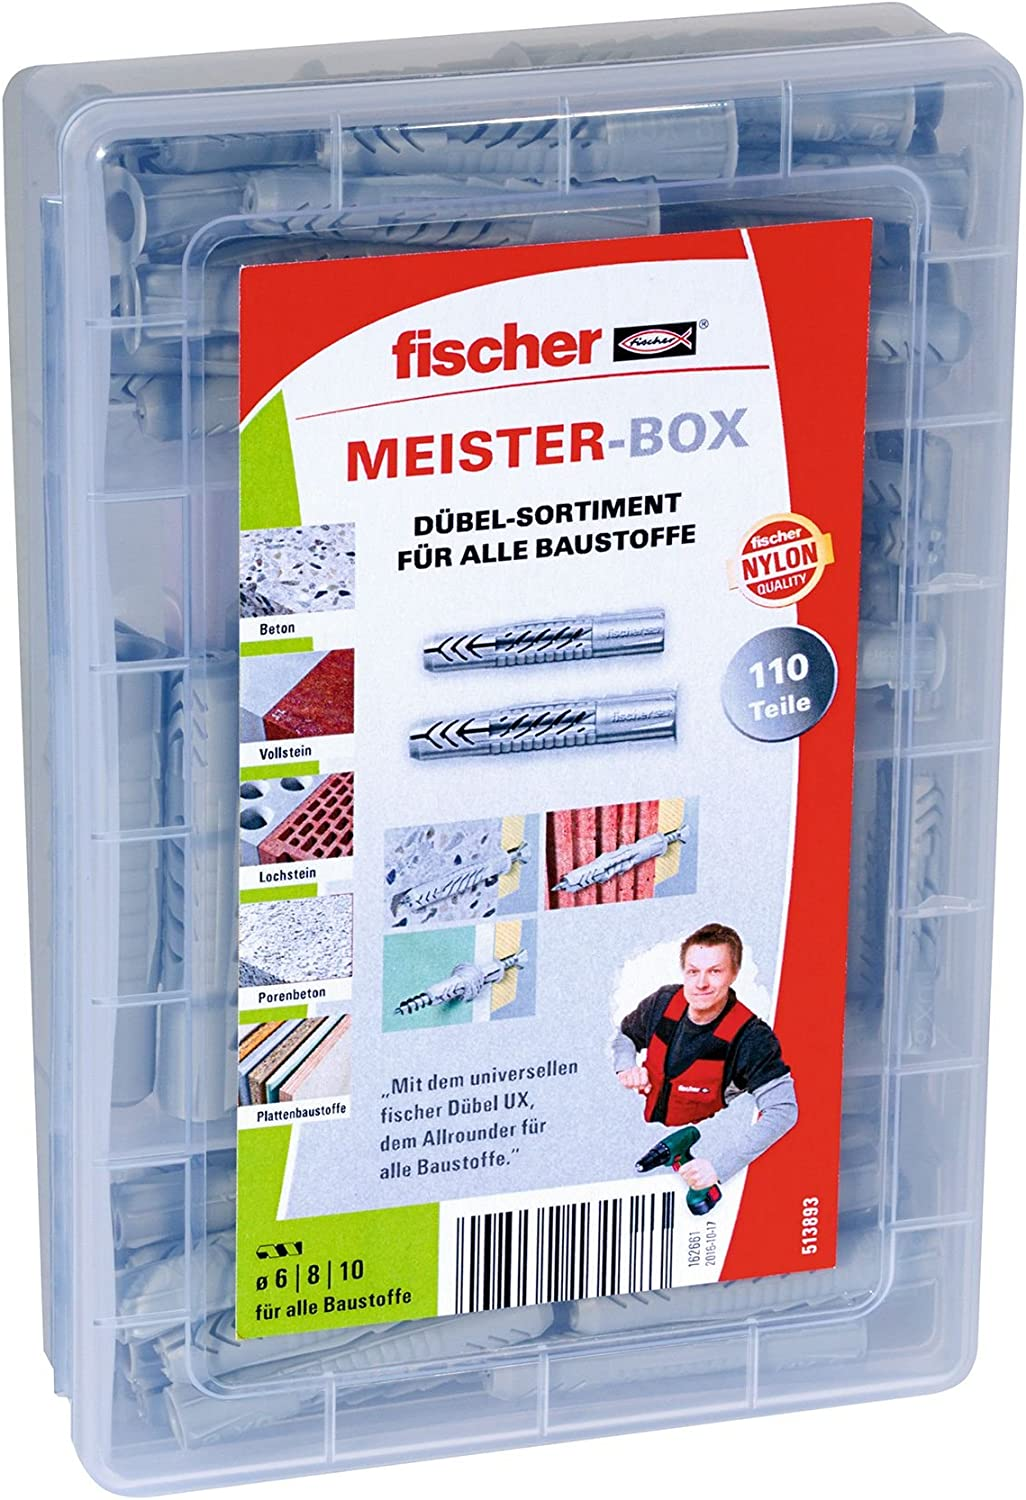 fischer 531227 Meister-Box greenline A2 25 4.5 x 50 15 Stainless Steel 5.0 x 60 Sx dowels Green and Screws 30 8 x 40 Contents: 50 6 x 30